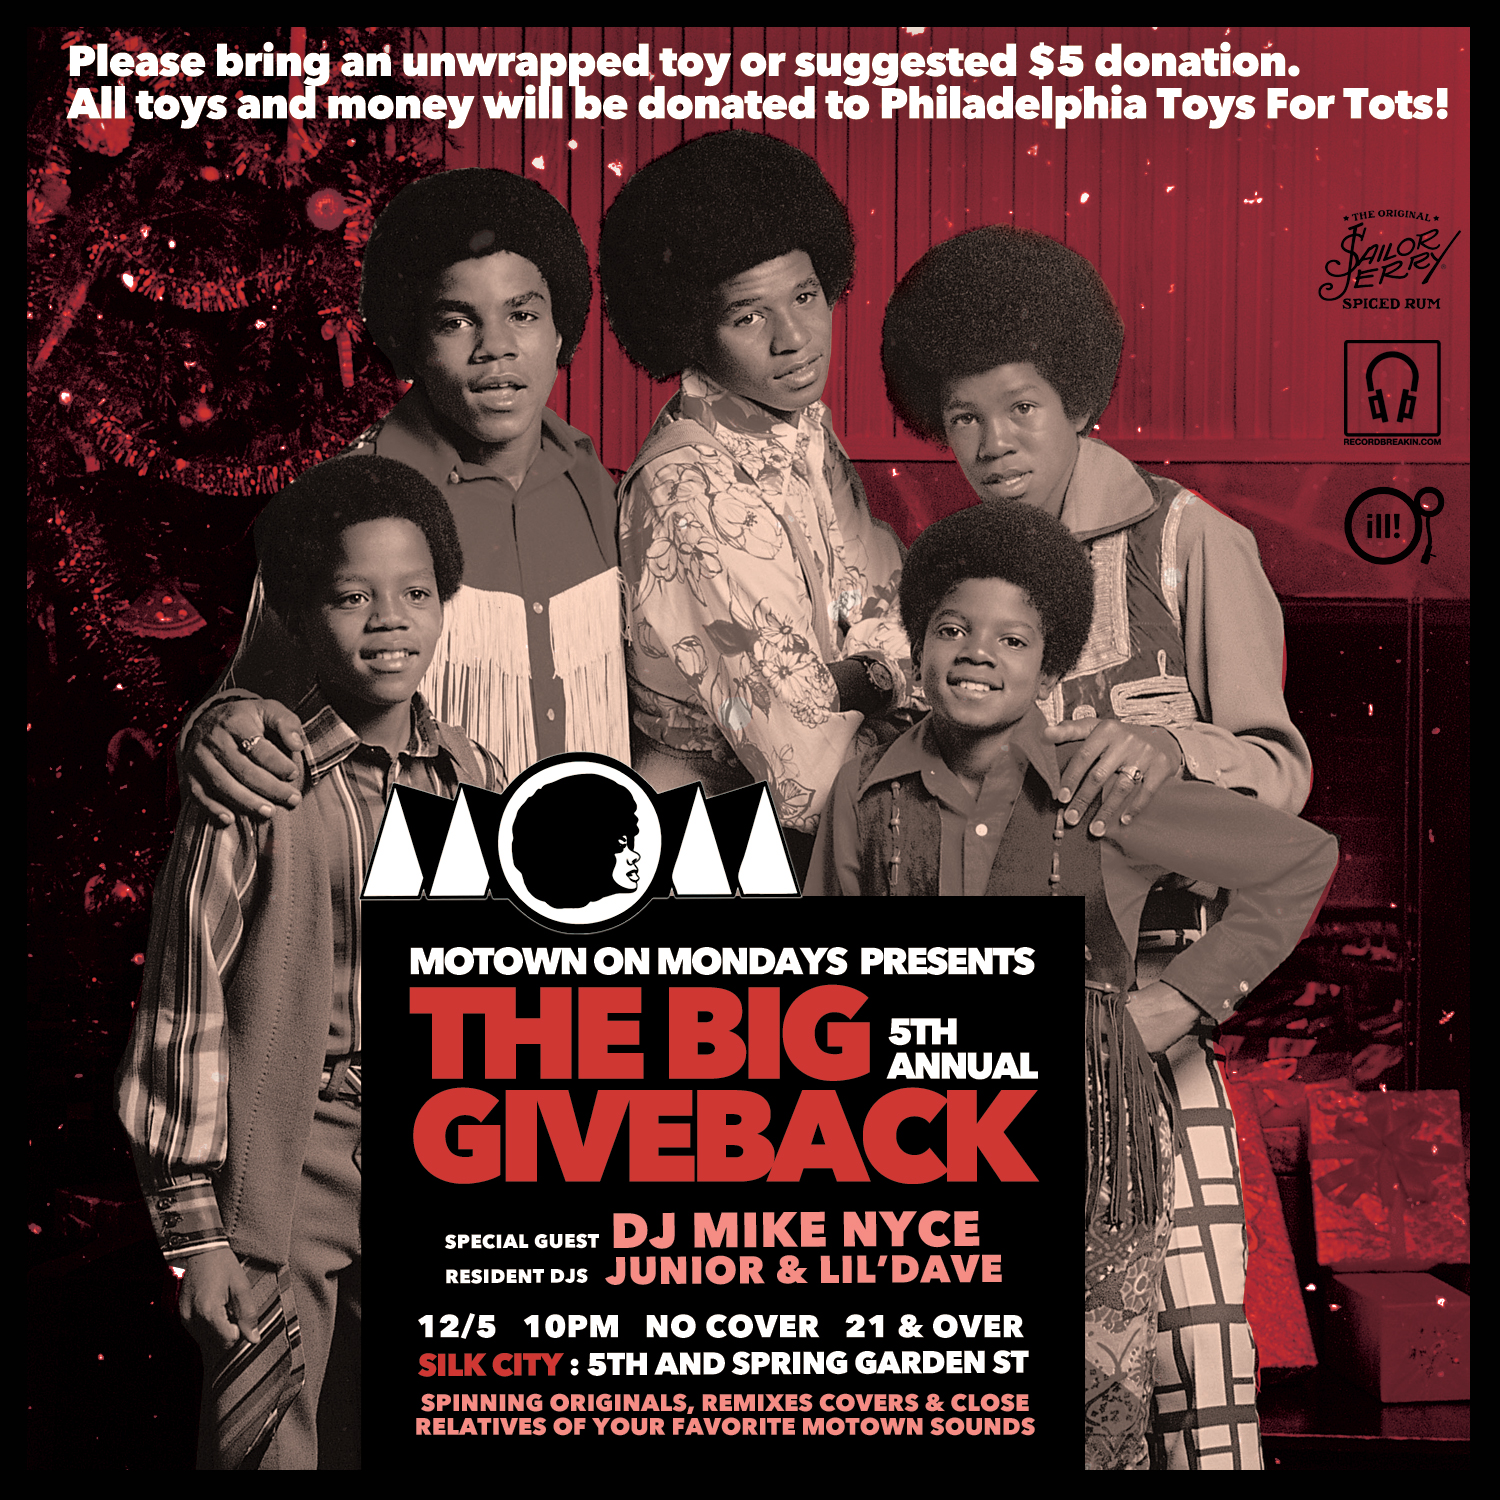 Motown On Mondays Philadelphia - The Big Giveback    Presented by MOM DJs & Events     SPECIAL GUEST DJ :: MIKE NYCE    RESIDENT MOM PHILLY DJs :: JUNIOR & LIL' DAVE    (Record Breakin' Music, Eavesdrop Radio, Illvibe Collective)     WHEN - Dec. 5th    WHERE- SILK CITY   435 SPRING GARDEN STREET  Please bring a unwrapped toy or suggested $5 donation.  All toys and money will be donated to Philadelphia Toys For Tots!  Sailor Jerry's specials, $6 citywides and $2 high lifes  NO COVER!  MoM is a family of DJs, producers, musicians and music enthusiasts who share a passion for the convergence of soul music and dancing. What began as a humble Monday night Motown & Soul party in San Francisco in 2009, has since exploded into a multi-city dance party across the states...  For more info about MOM DJs & Events go to  www.MOMFAM.com